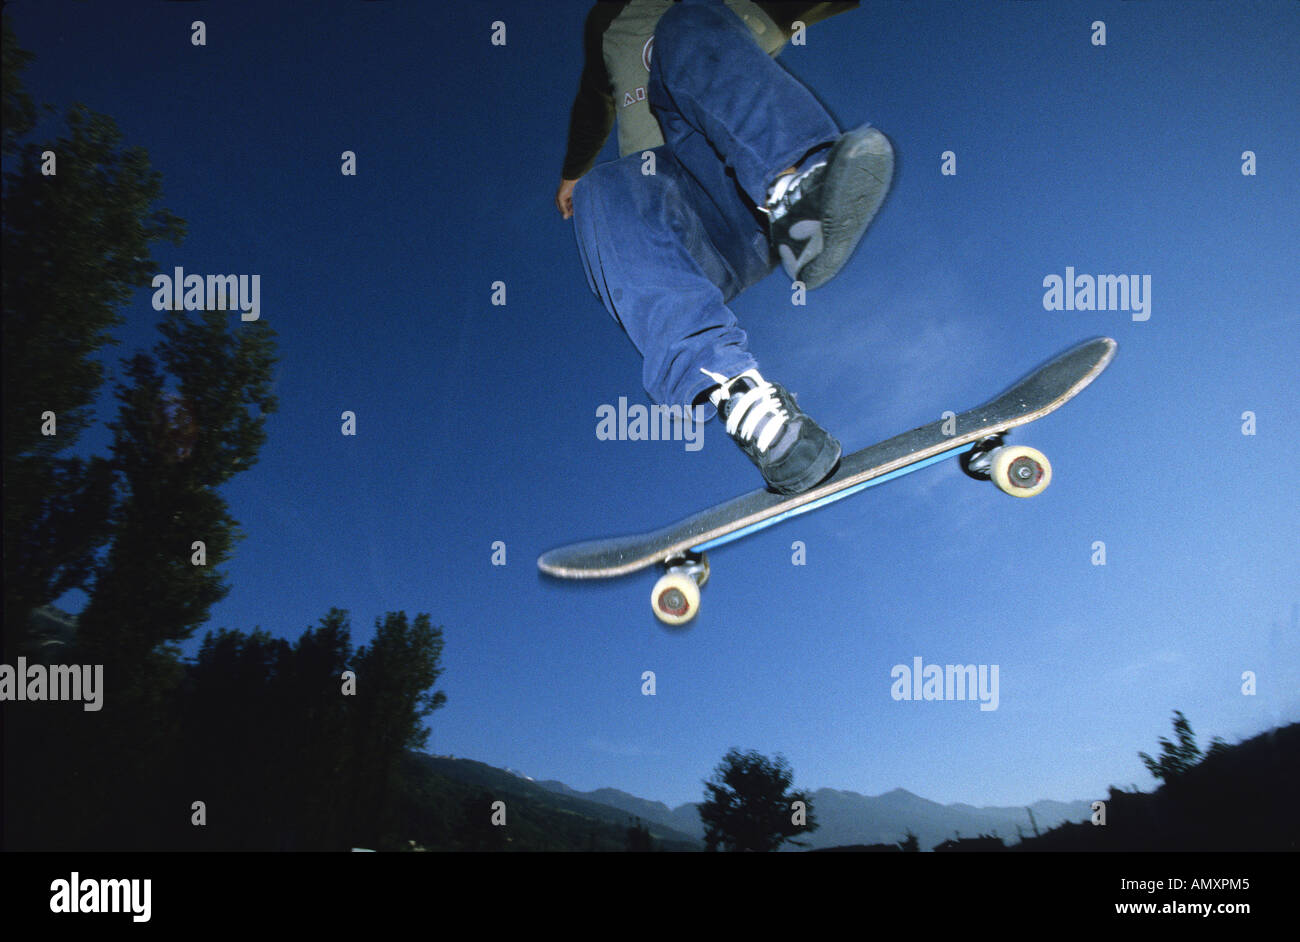 Skateboarder showing footwear. - Stock Image